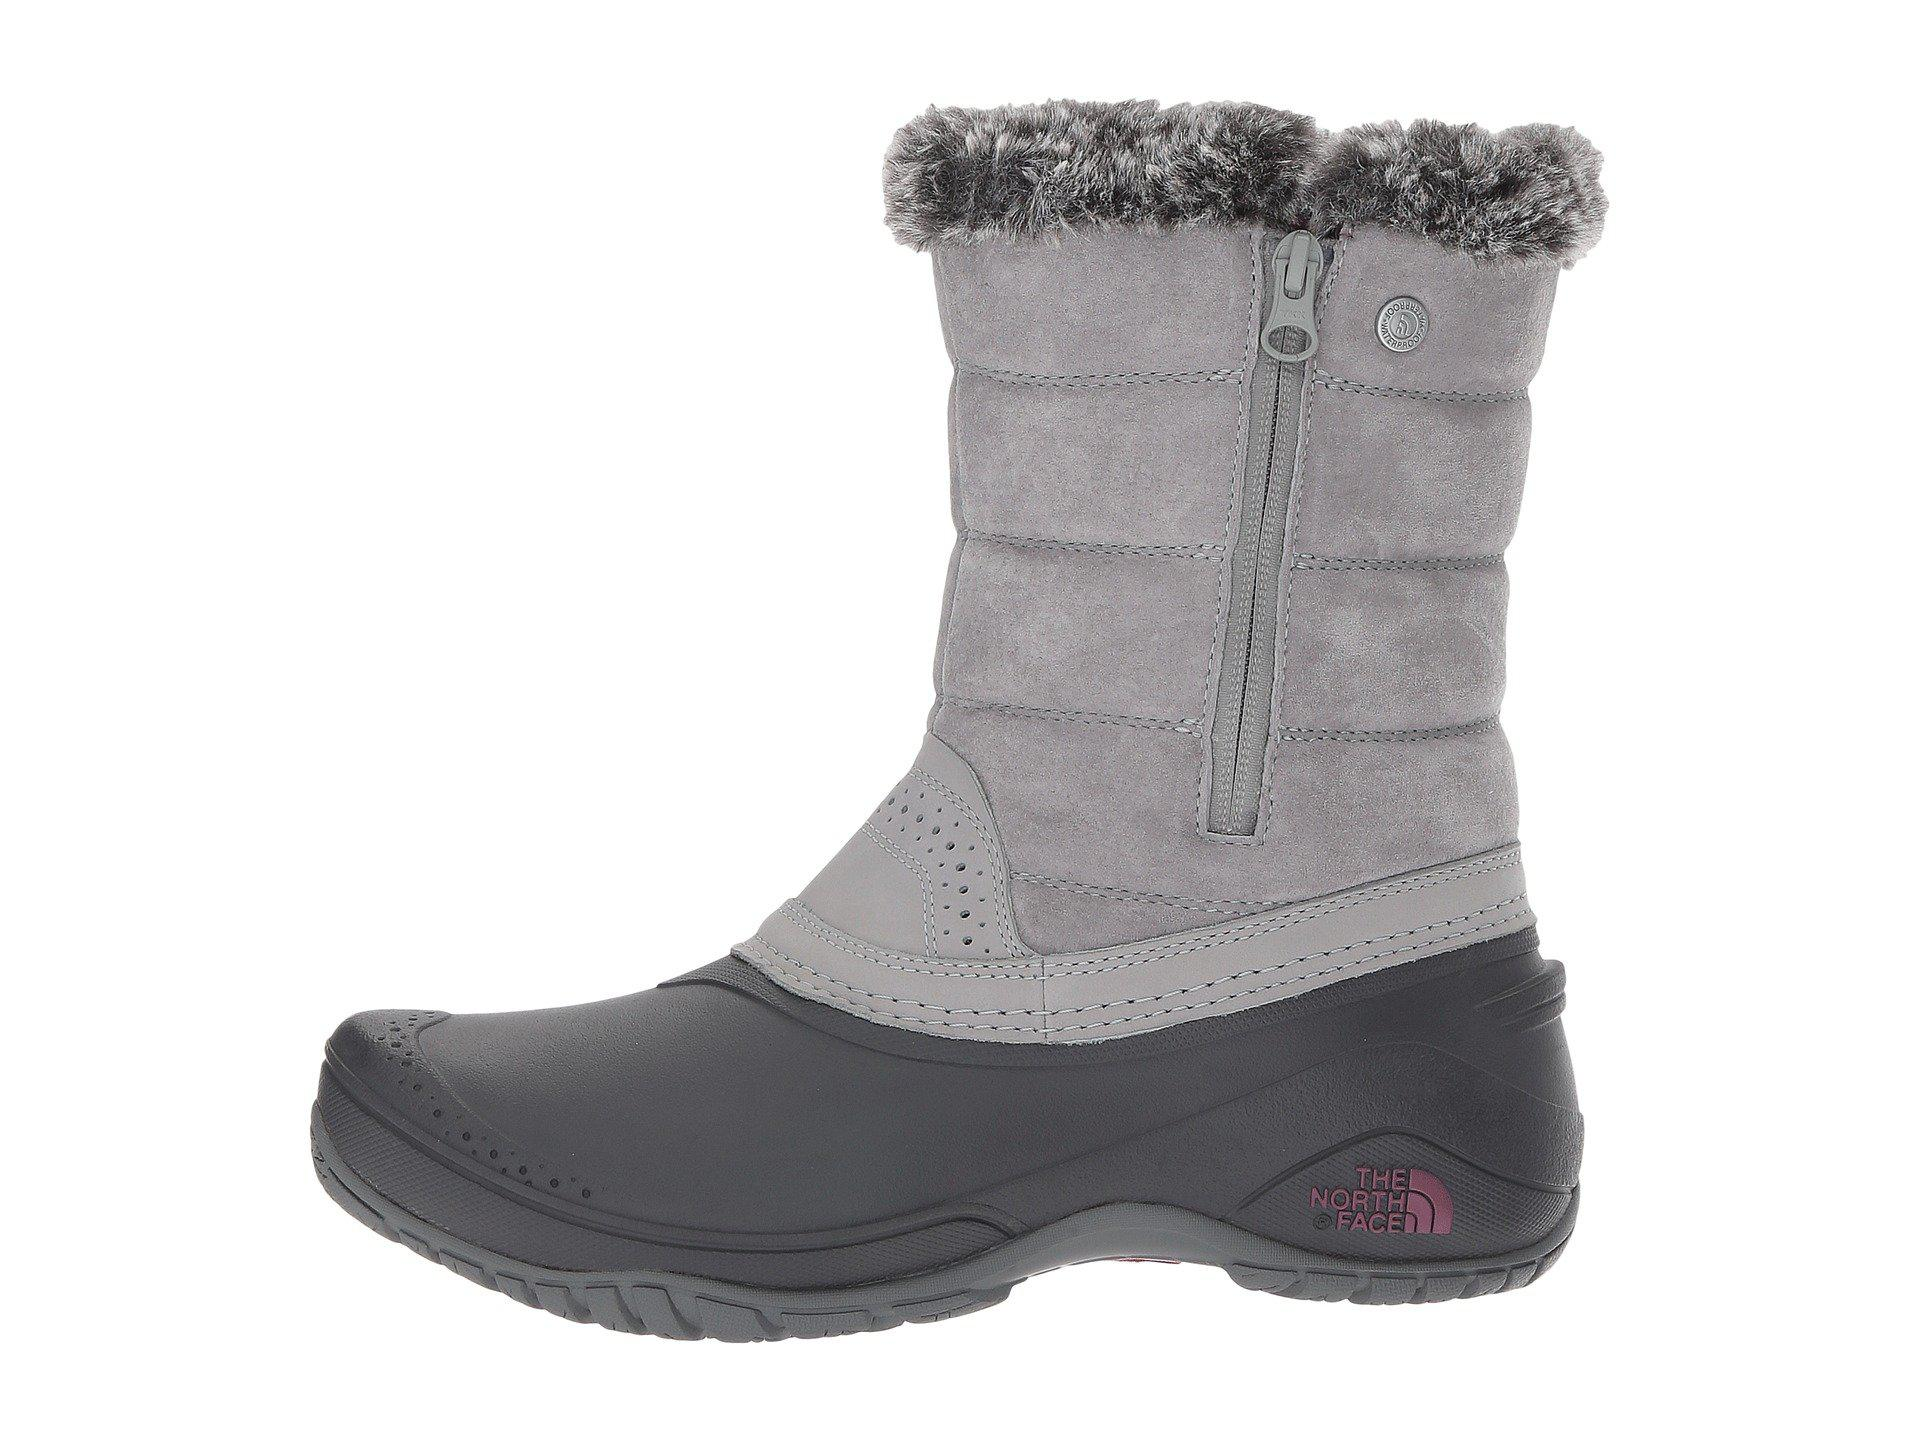 96cf92b11 The North Face Gray Shellista Iii 200g Waterproof Pull-on Winter Boots